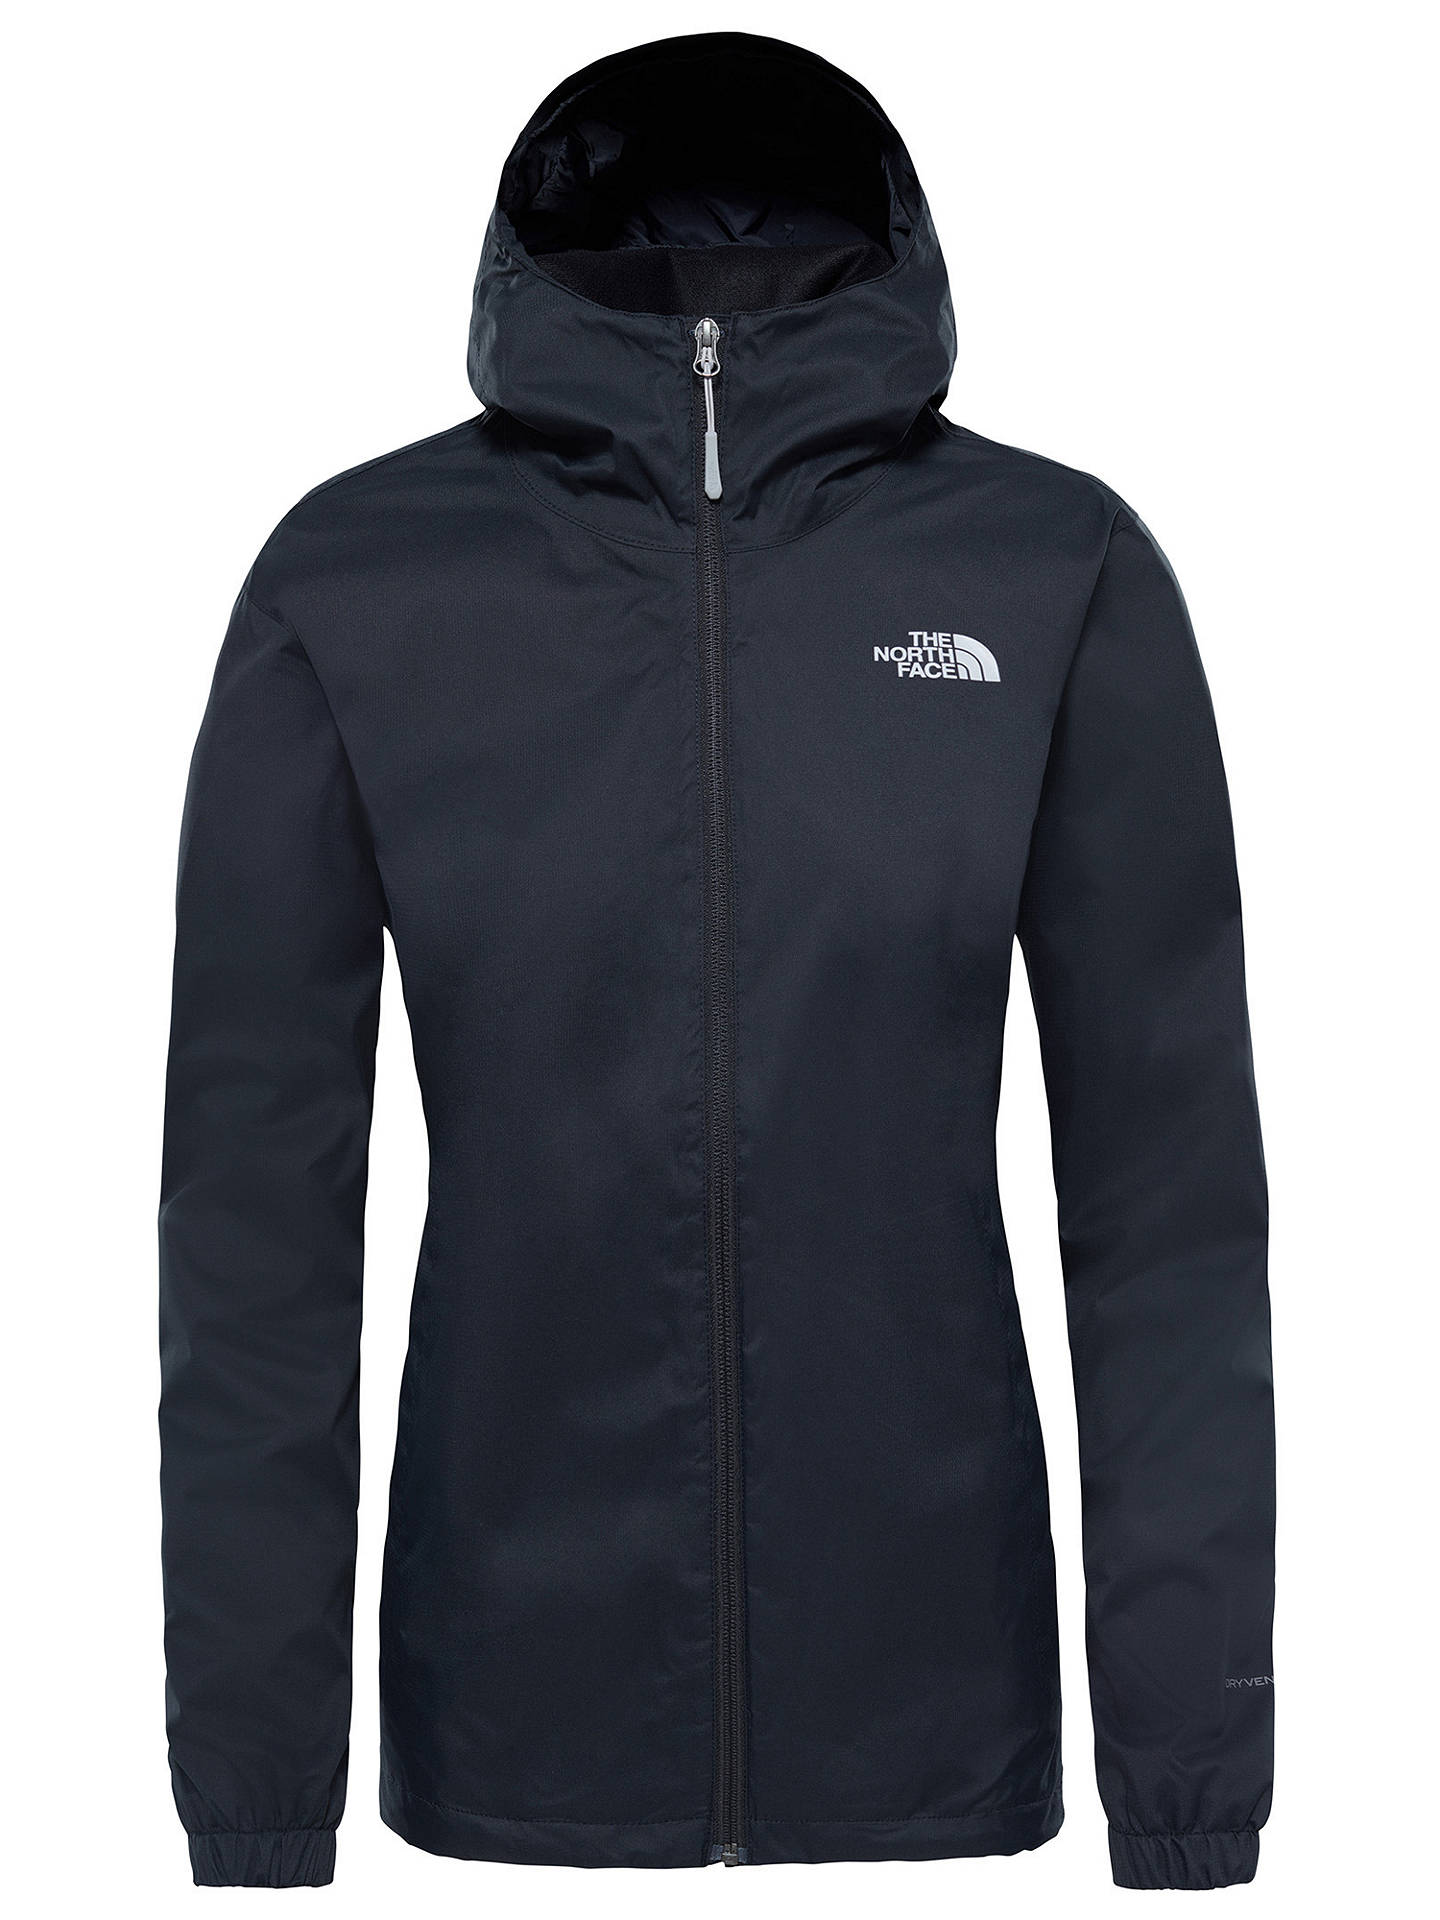 drop shipping world-wide free shipping various styles The North Face Quest Women's Waterproof Jacket, Black